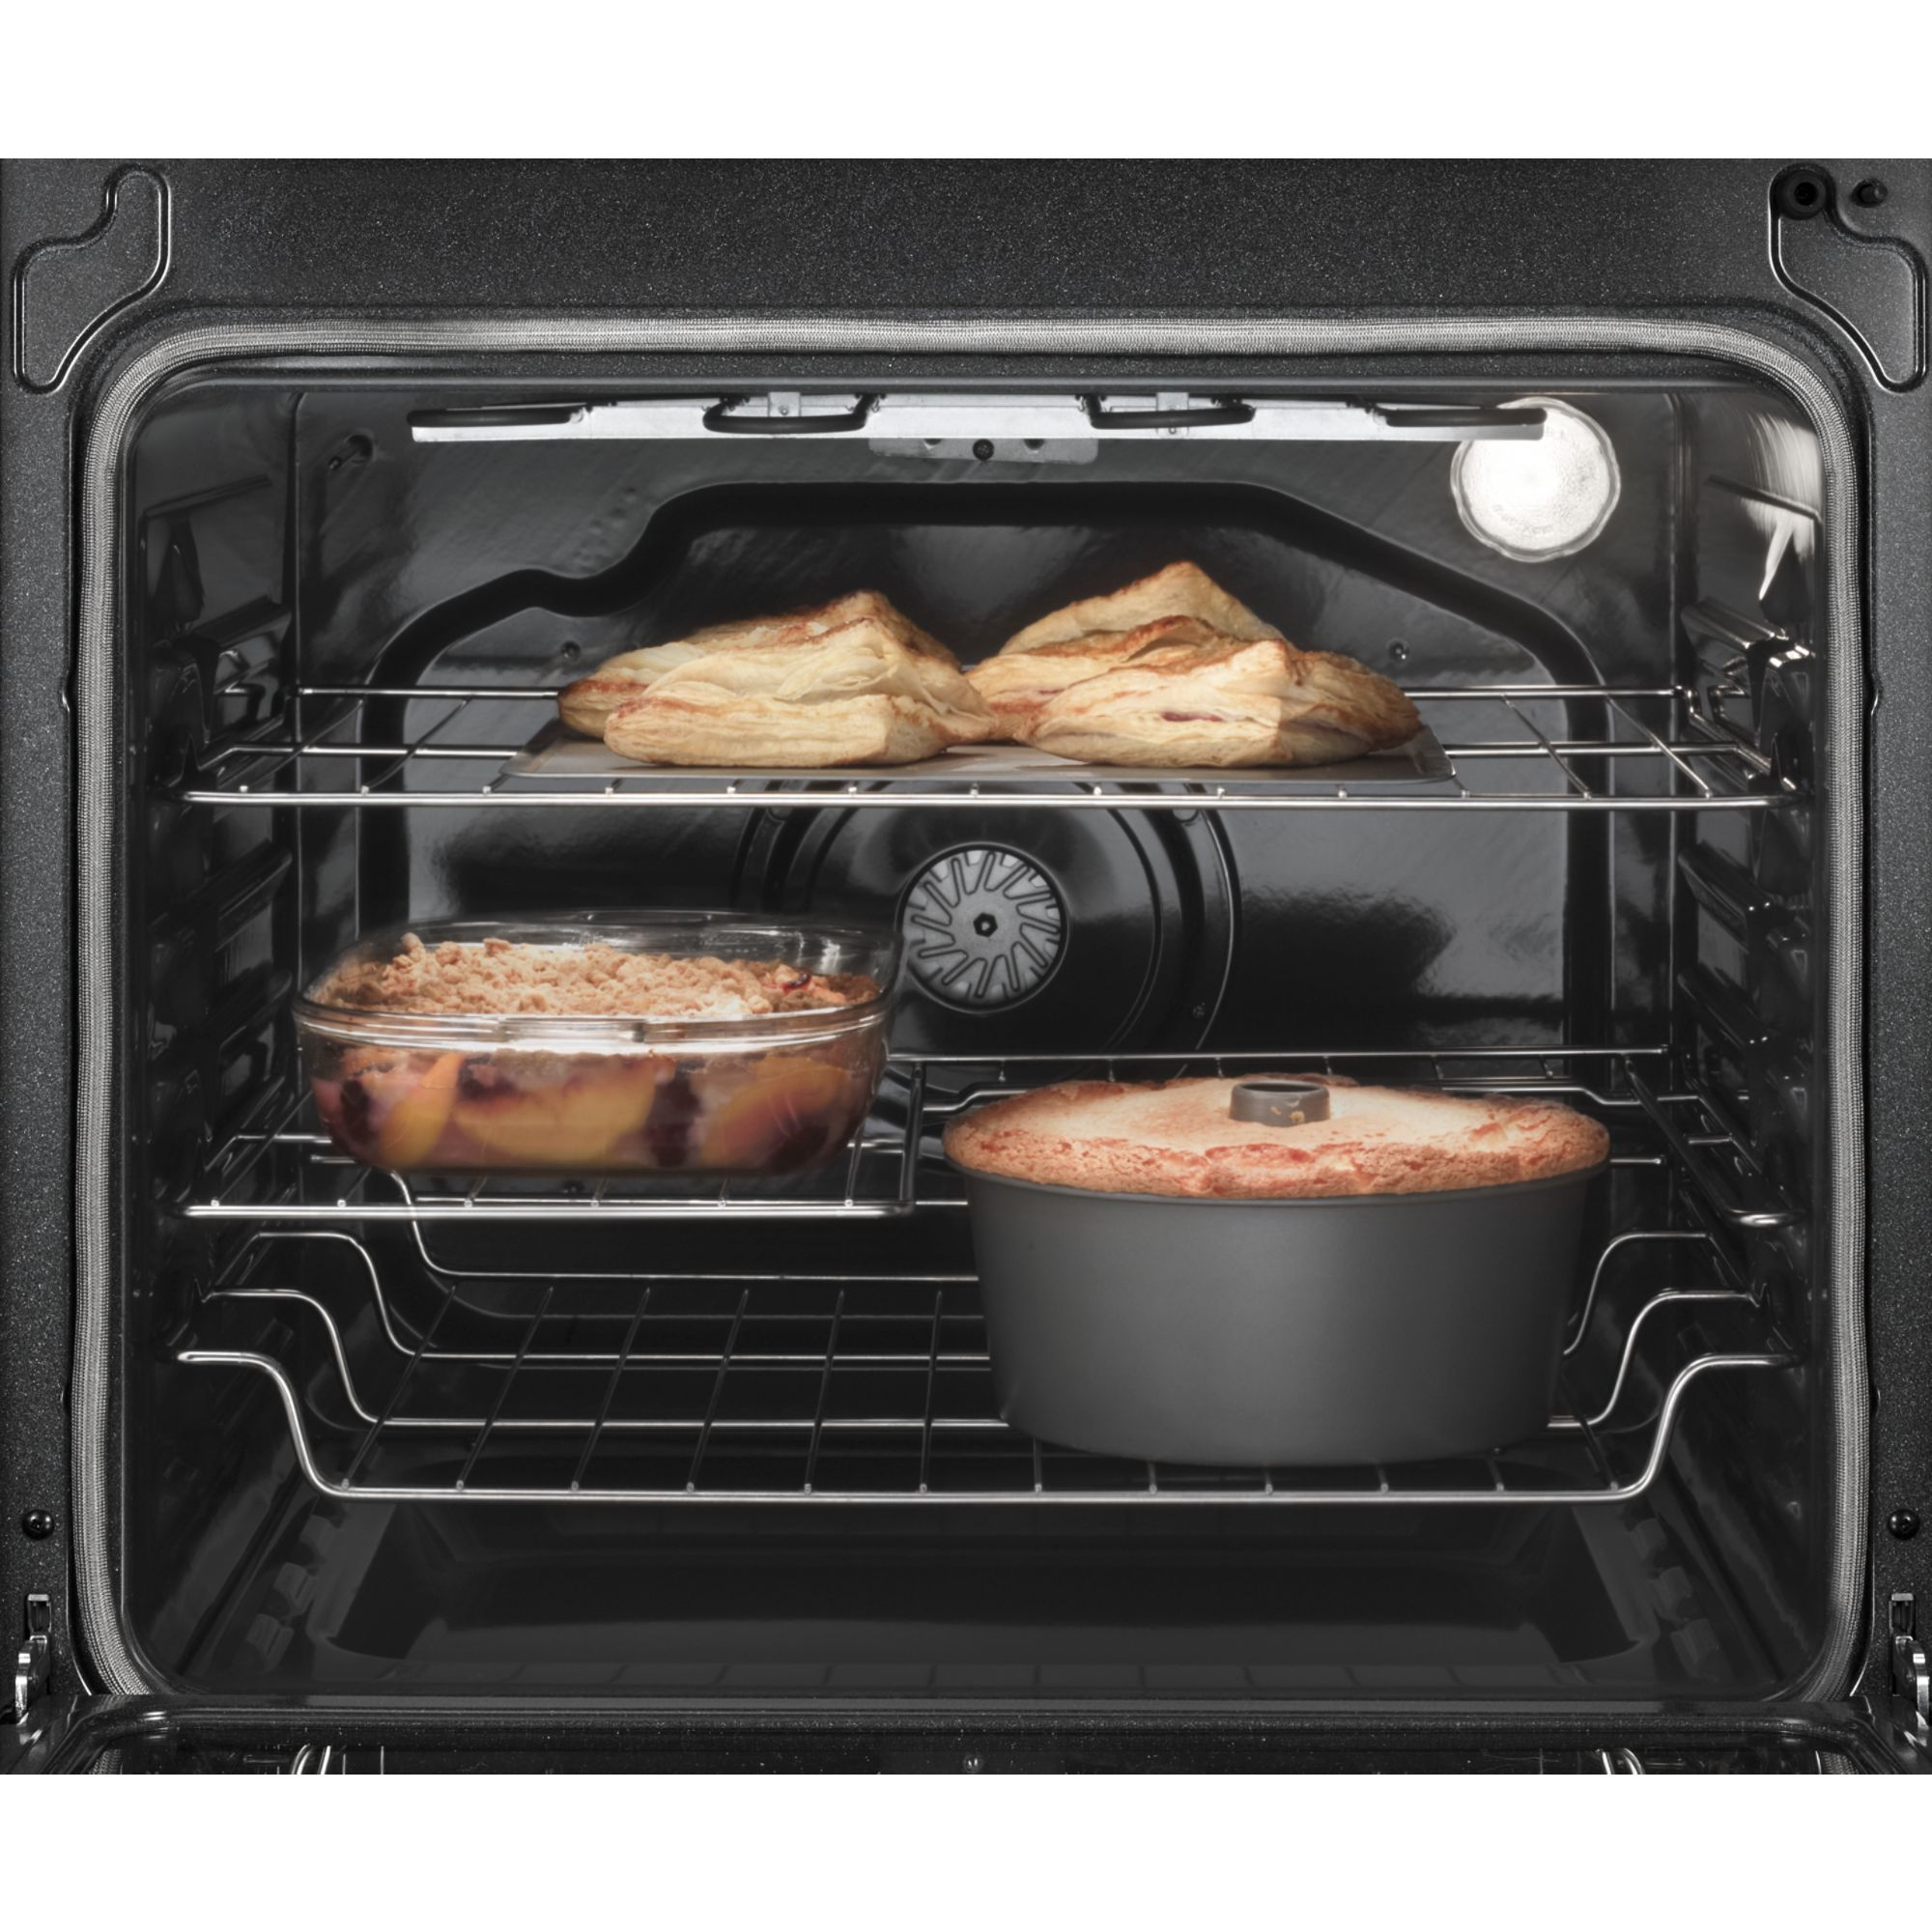 Whirlpool 6.2 cu. ft. Electric Range w/ Rapid Preheat - Stainless Steel